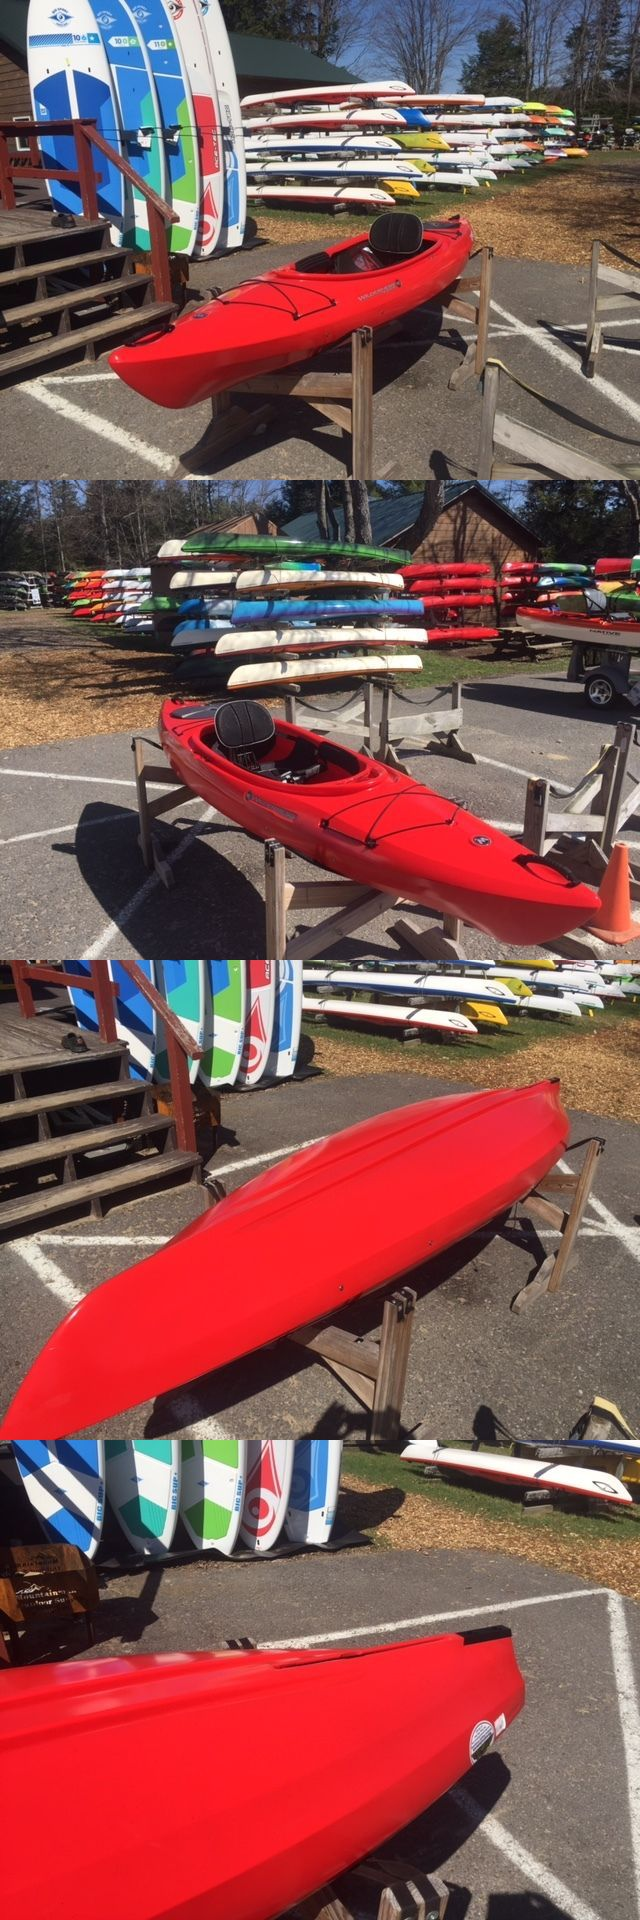 Kayaks 36122: Wilderness Systems Aspire 105 Kayak - Red Closeout Kayak - New -> BUY IT NOW ONLY: $623.2 on eBay!